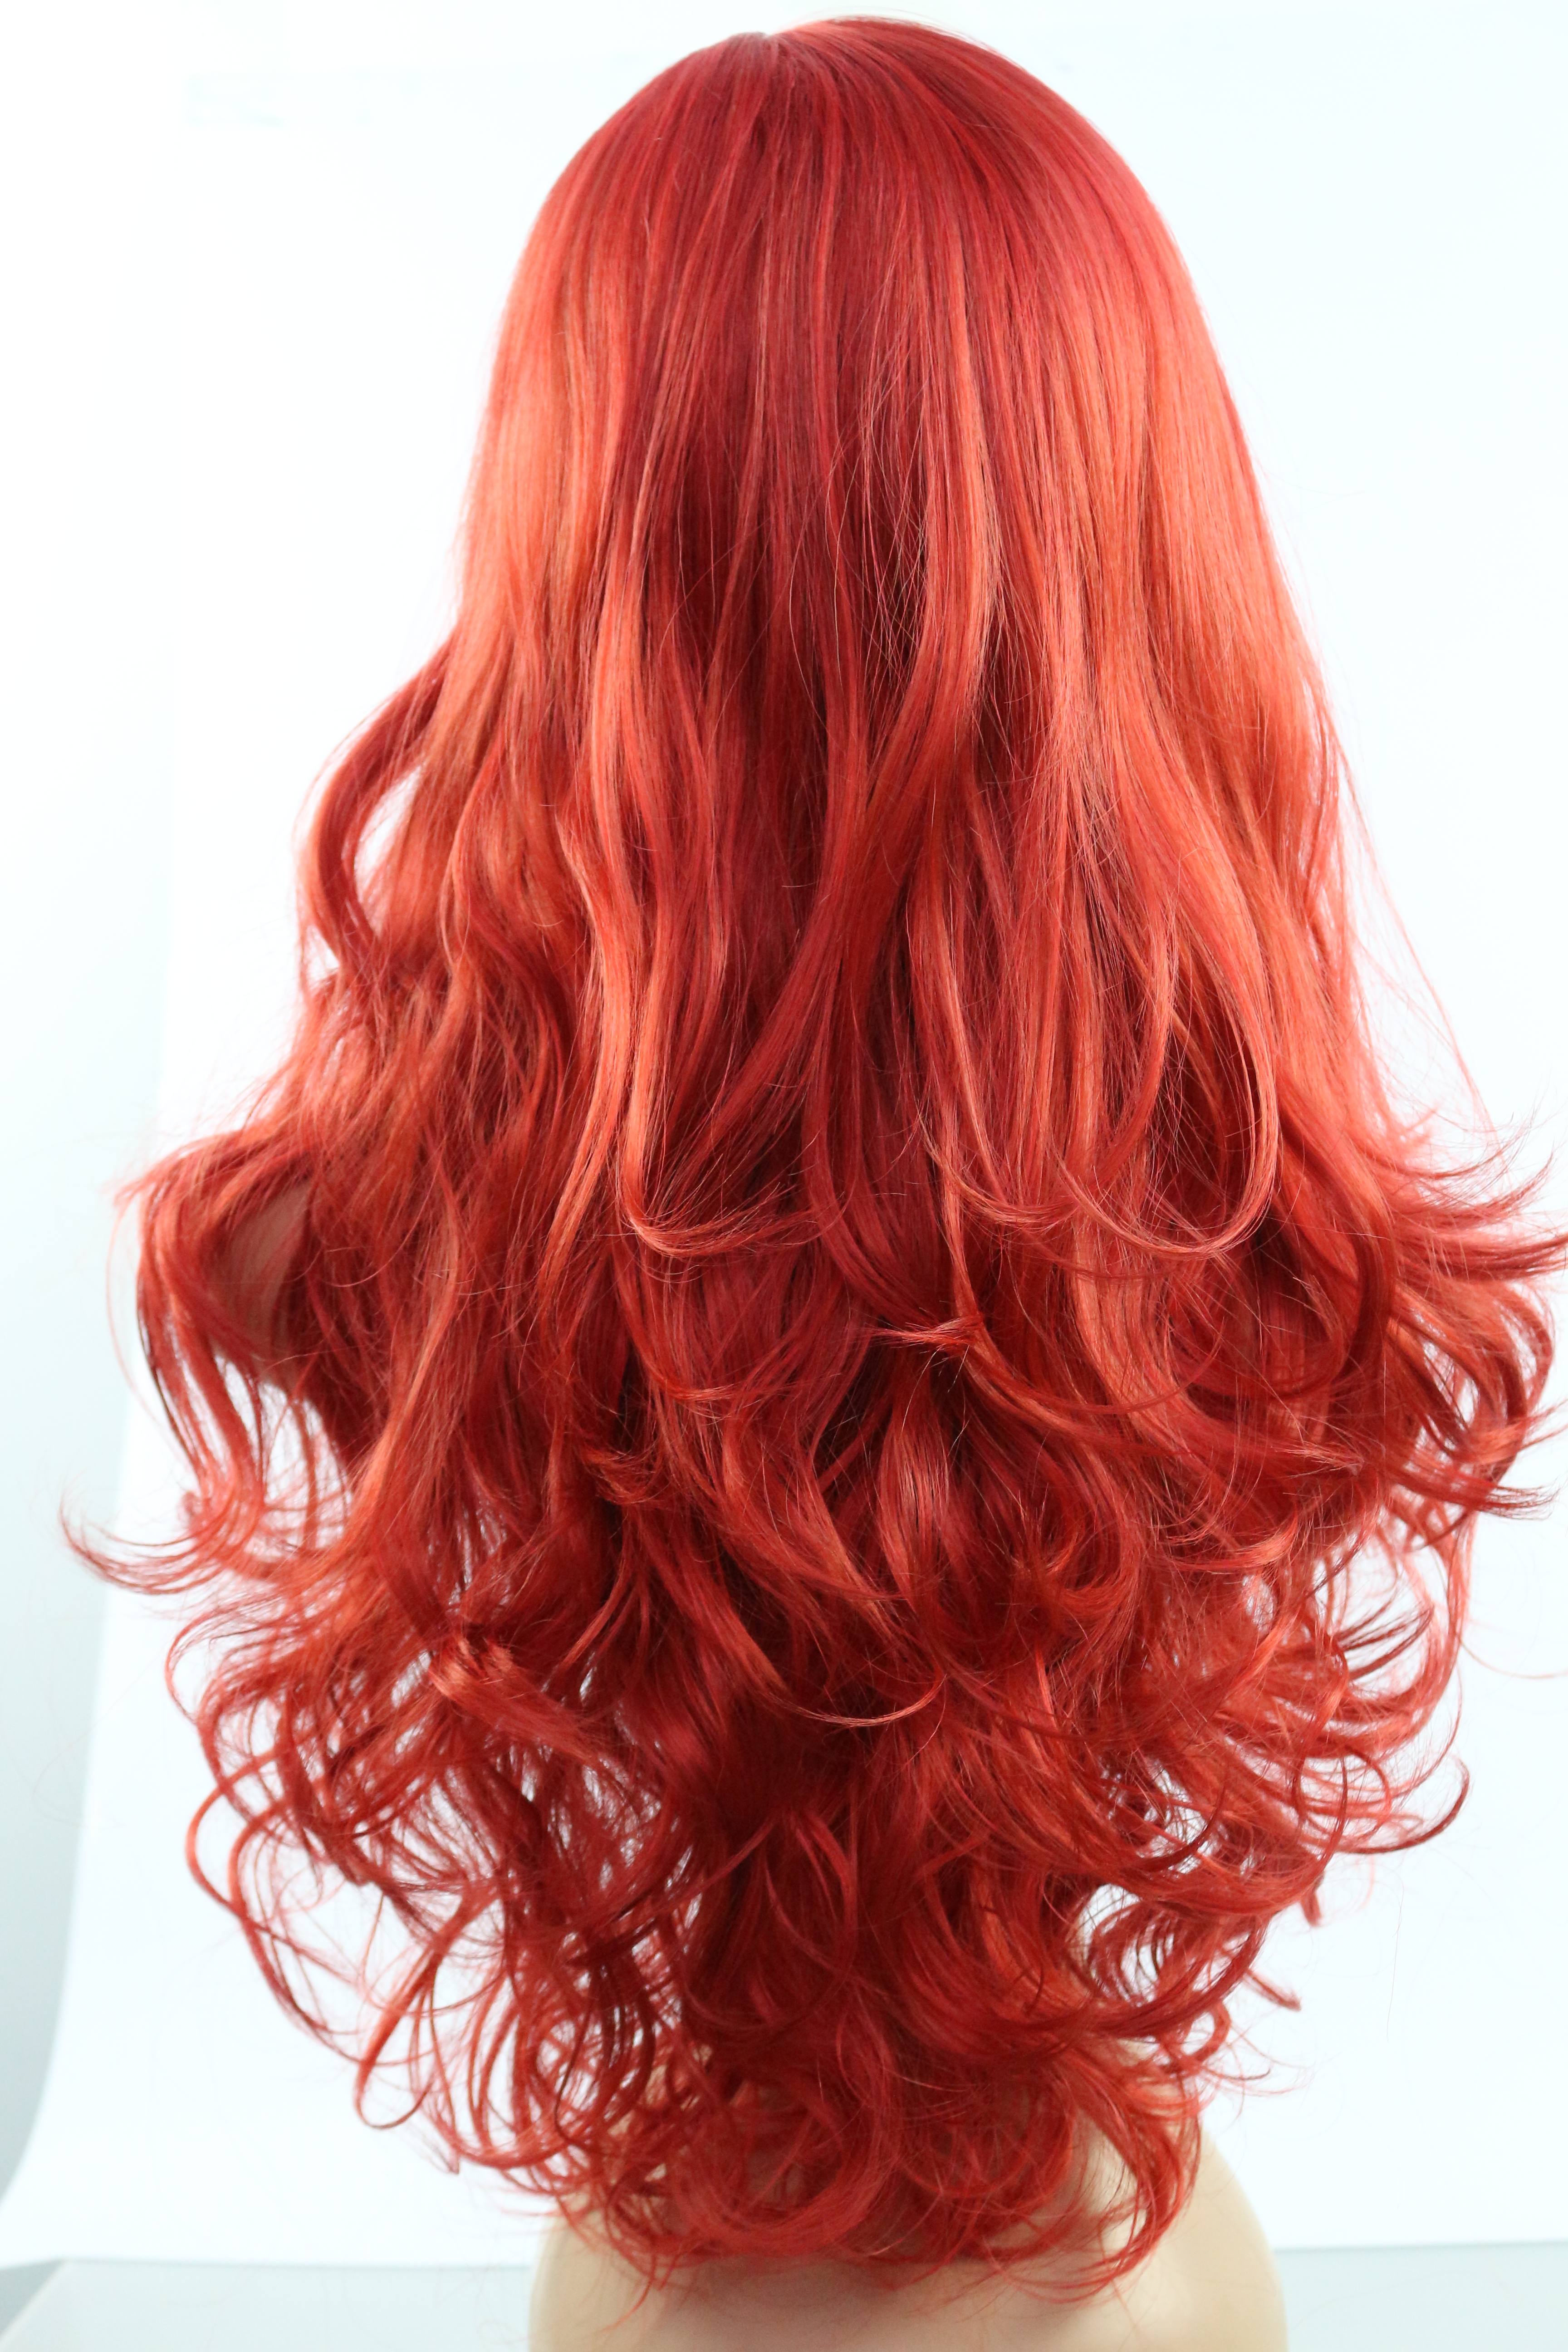 2018 New Copper Red 350 Long Wavy Costume Wig C13 350